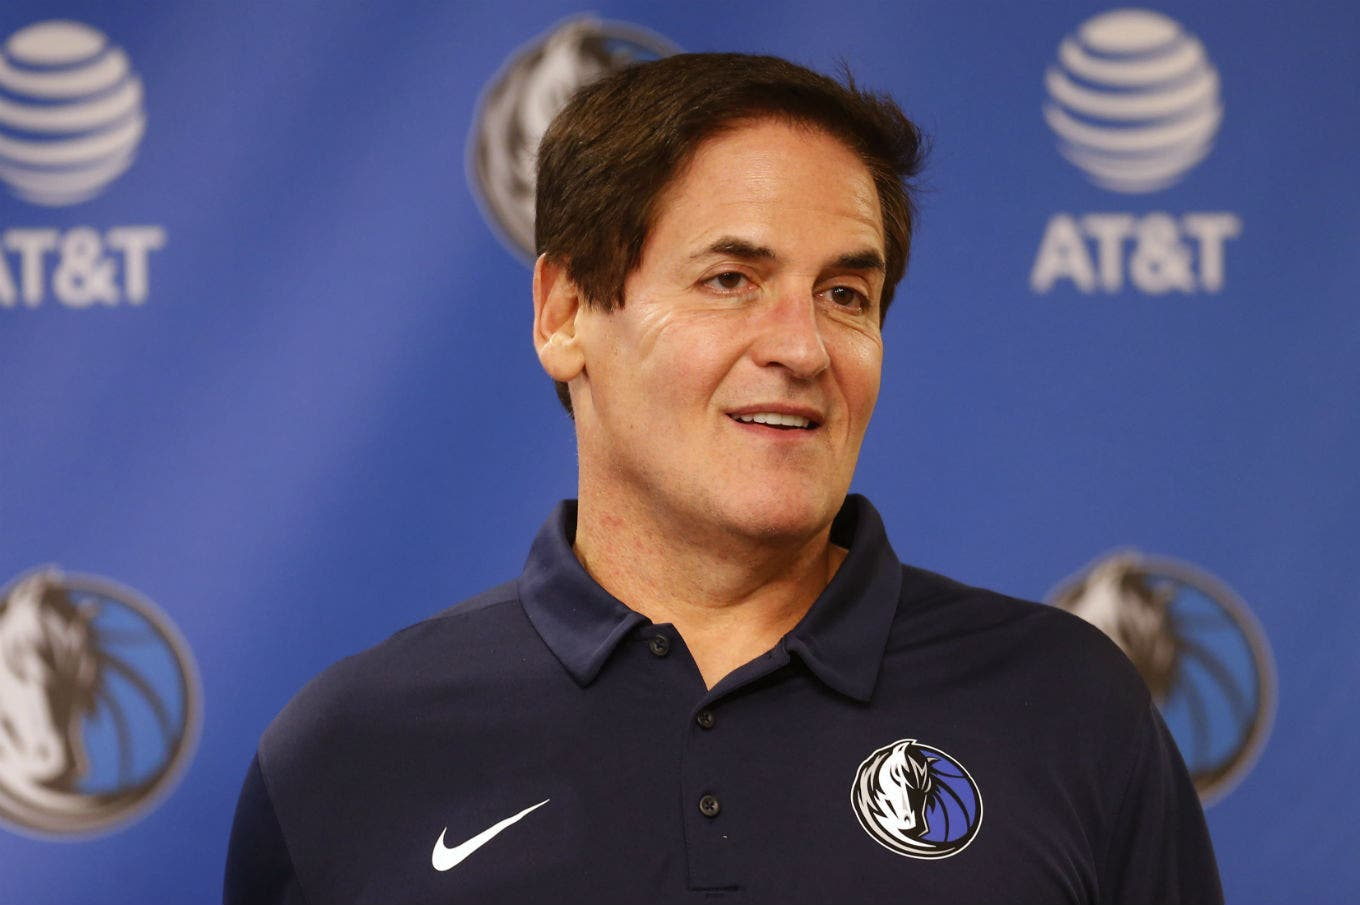 Más de 200 testimonios y 1,6 millones de documentos: la NBA confirmó casos de acoso sexual en Dallas Mavericks